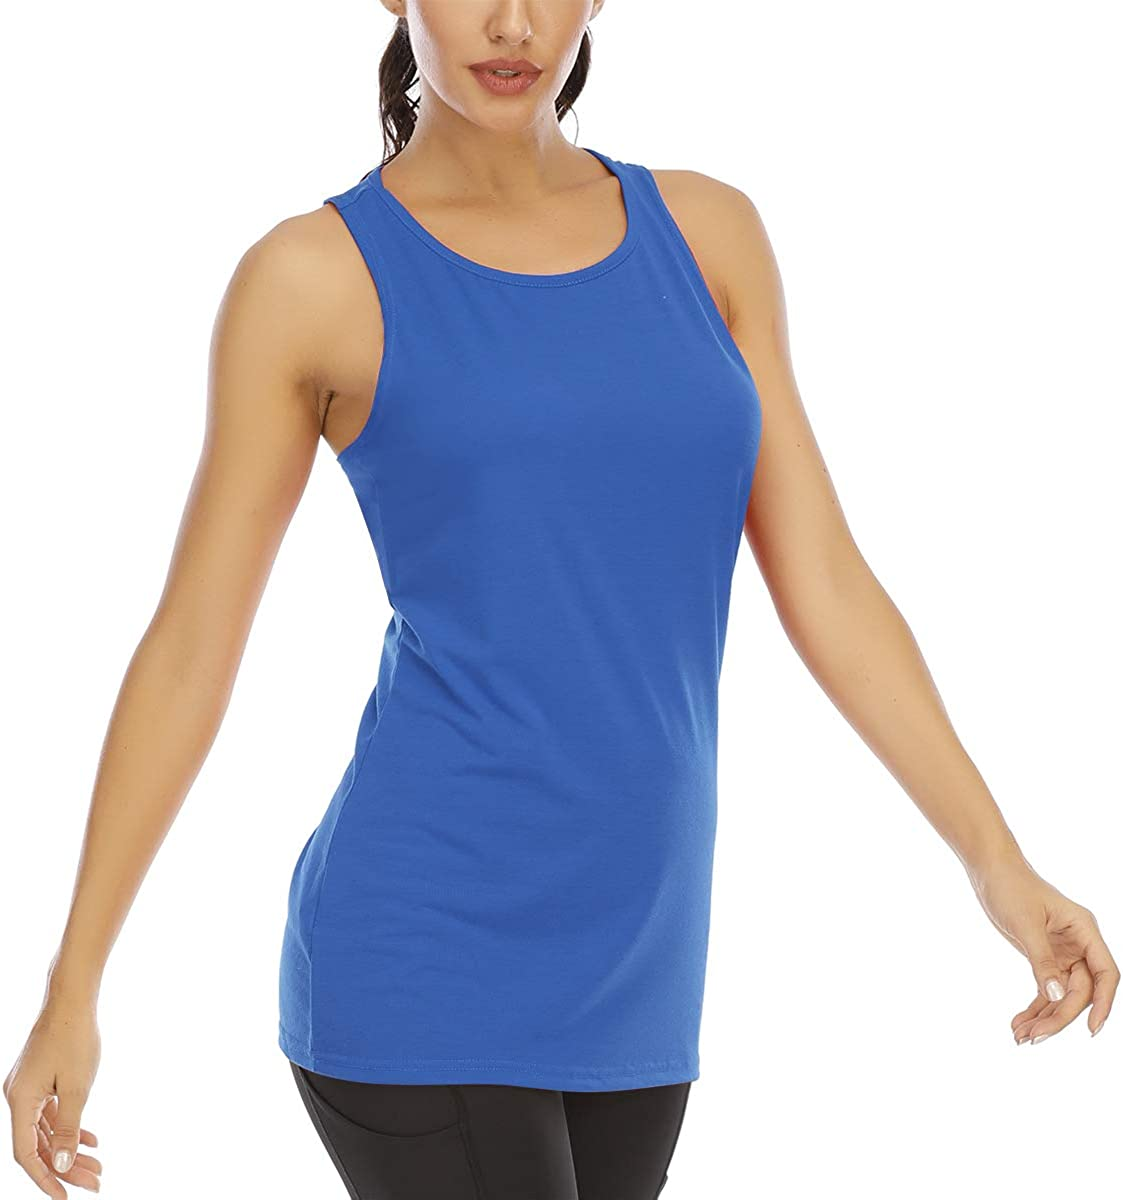 Aonour Workout Tops for Women Loose fit Mesh Back Running Shirts Excerise Gym Shirts Yoga Tank Tops